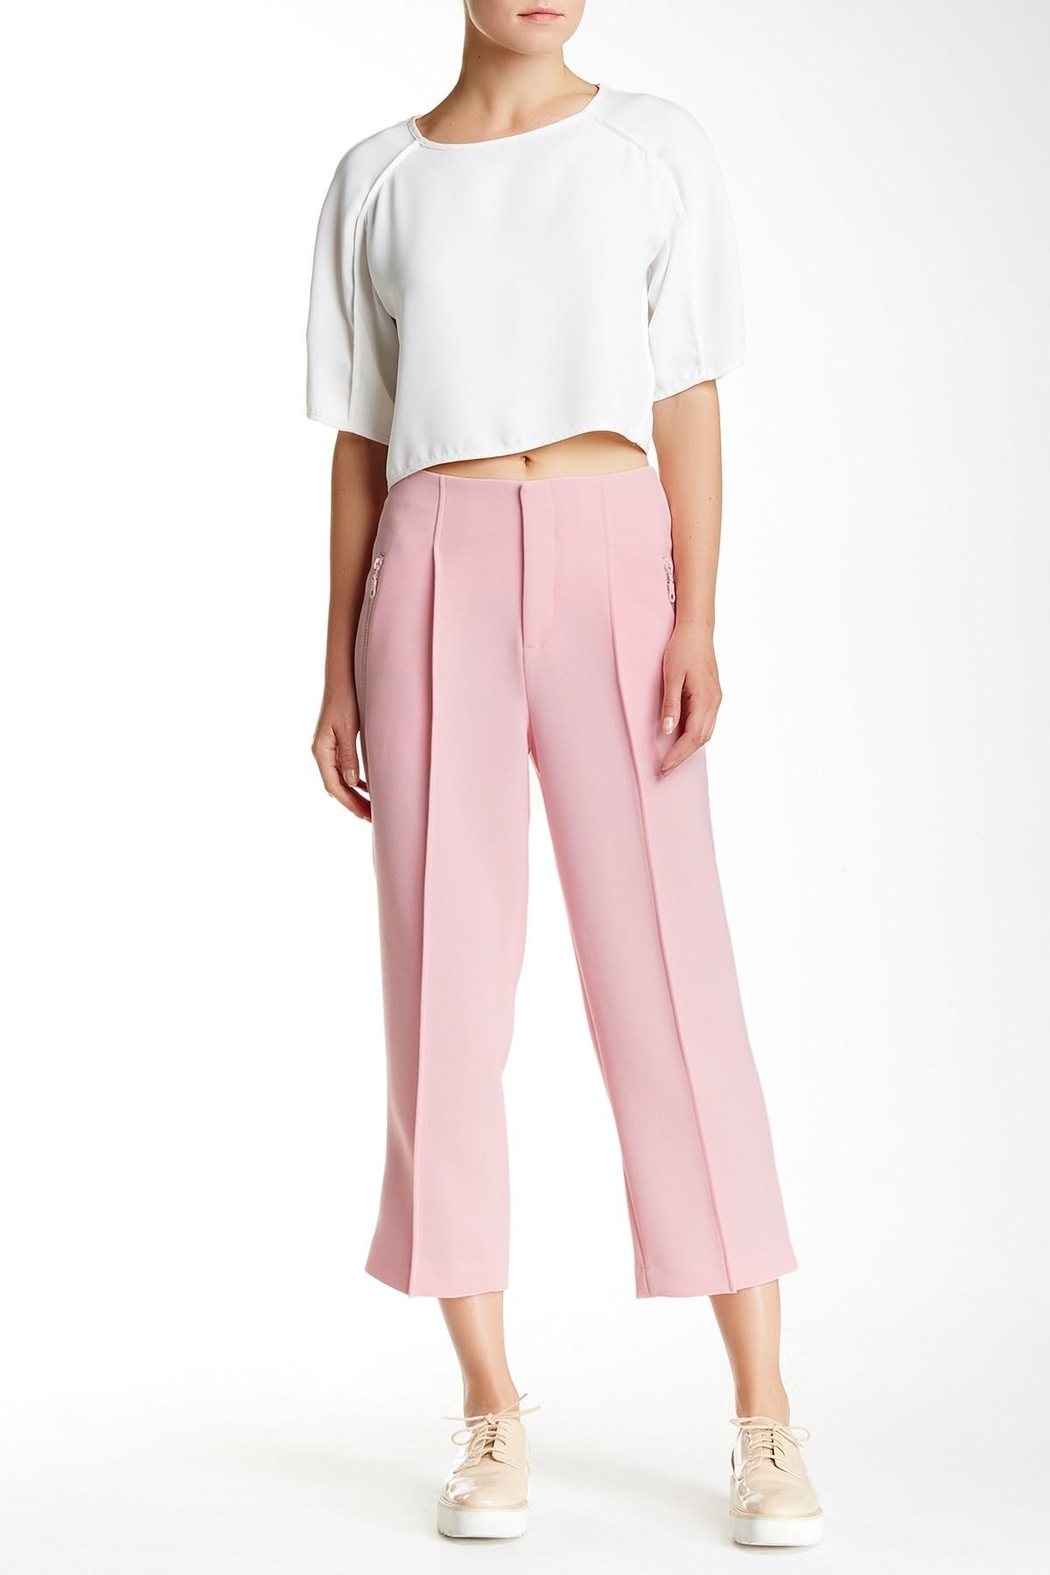 Co + Co BY Coco Rocha Pink Cora Pant - Main Image